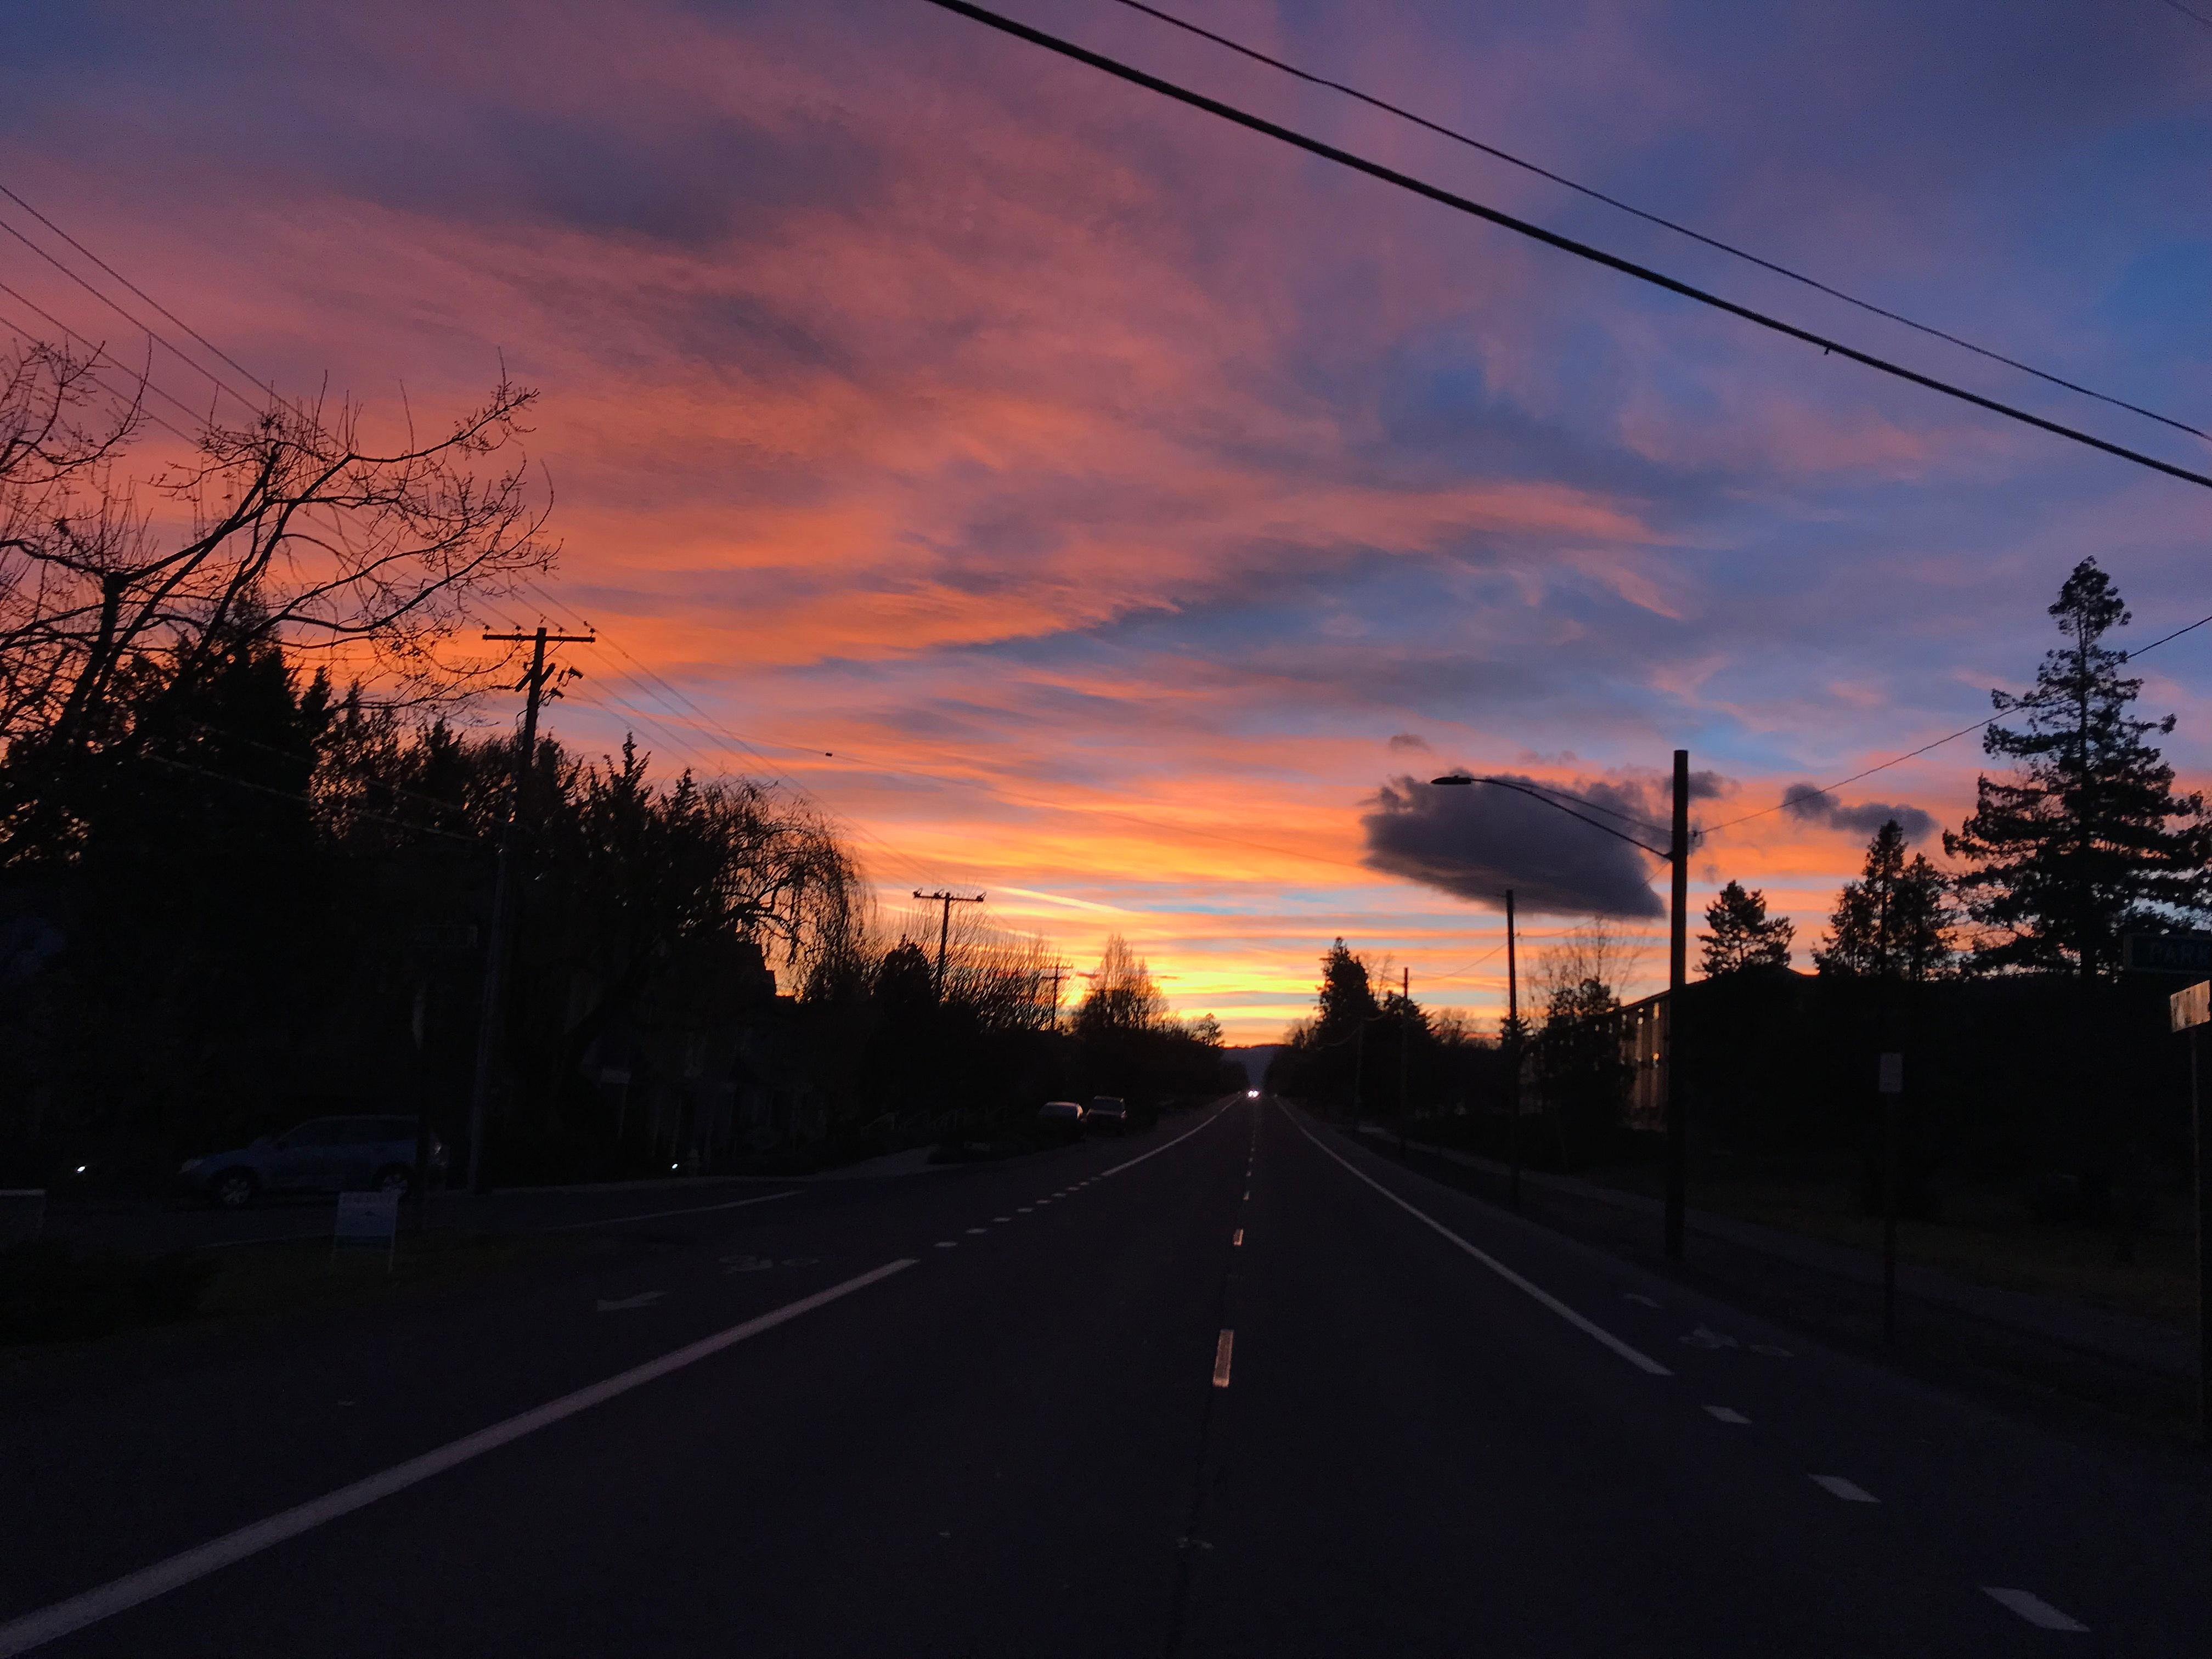 Jerry Hauck took this photo during his morning walk on Siskiyou Boulevard.